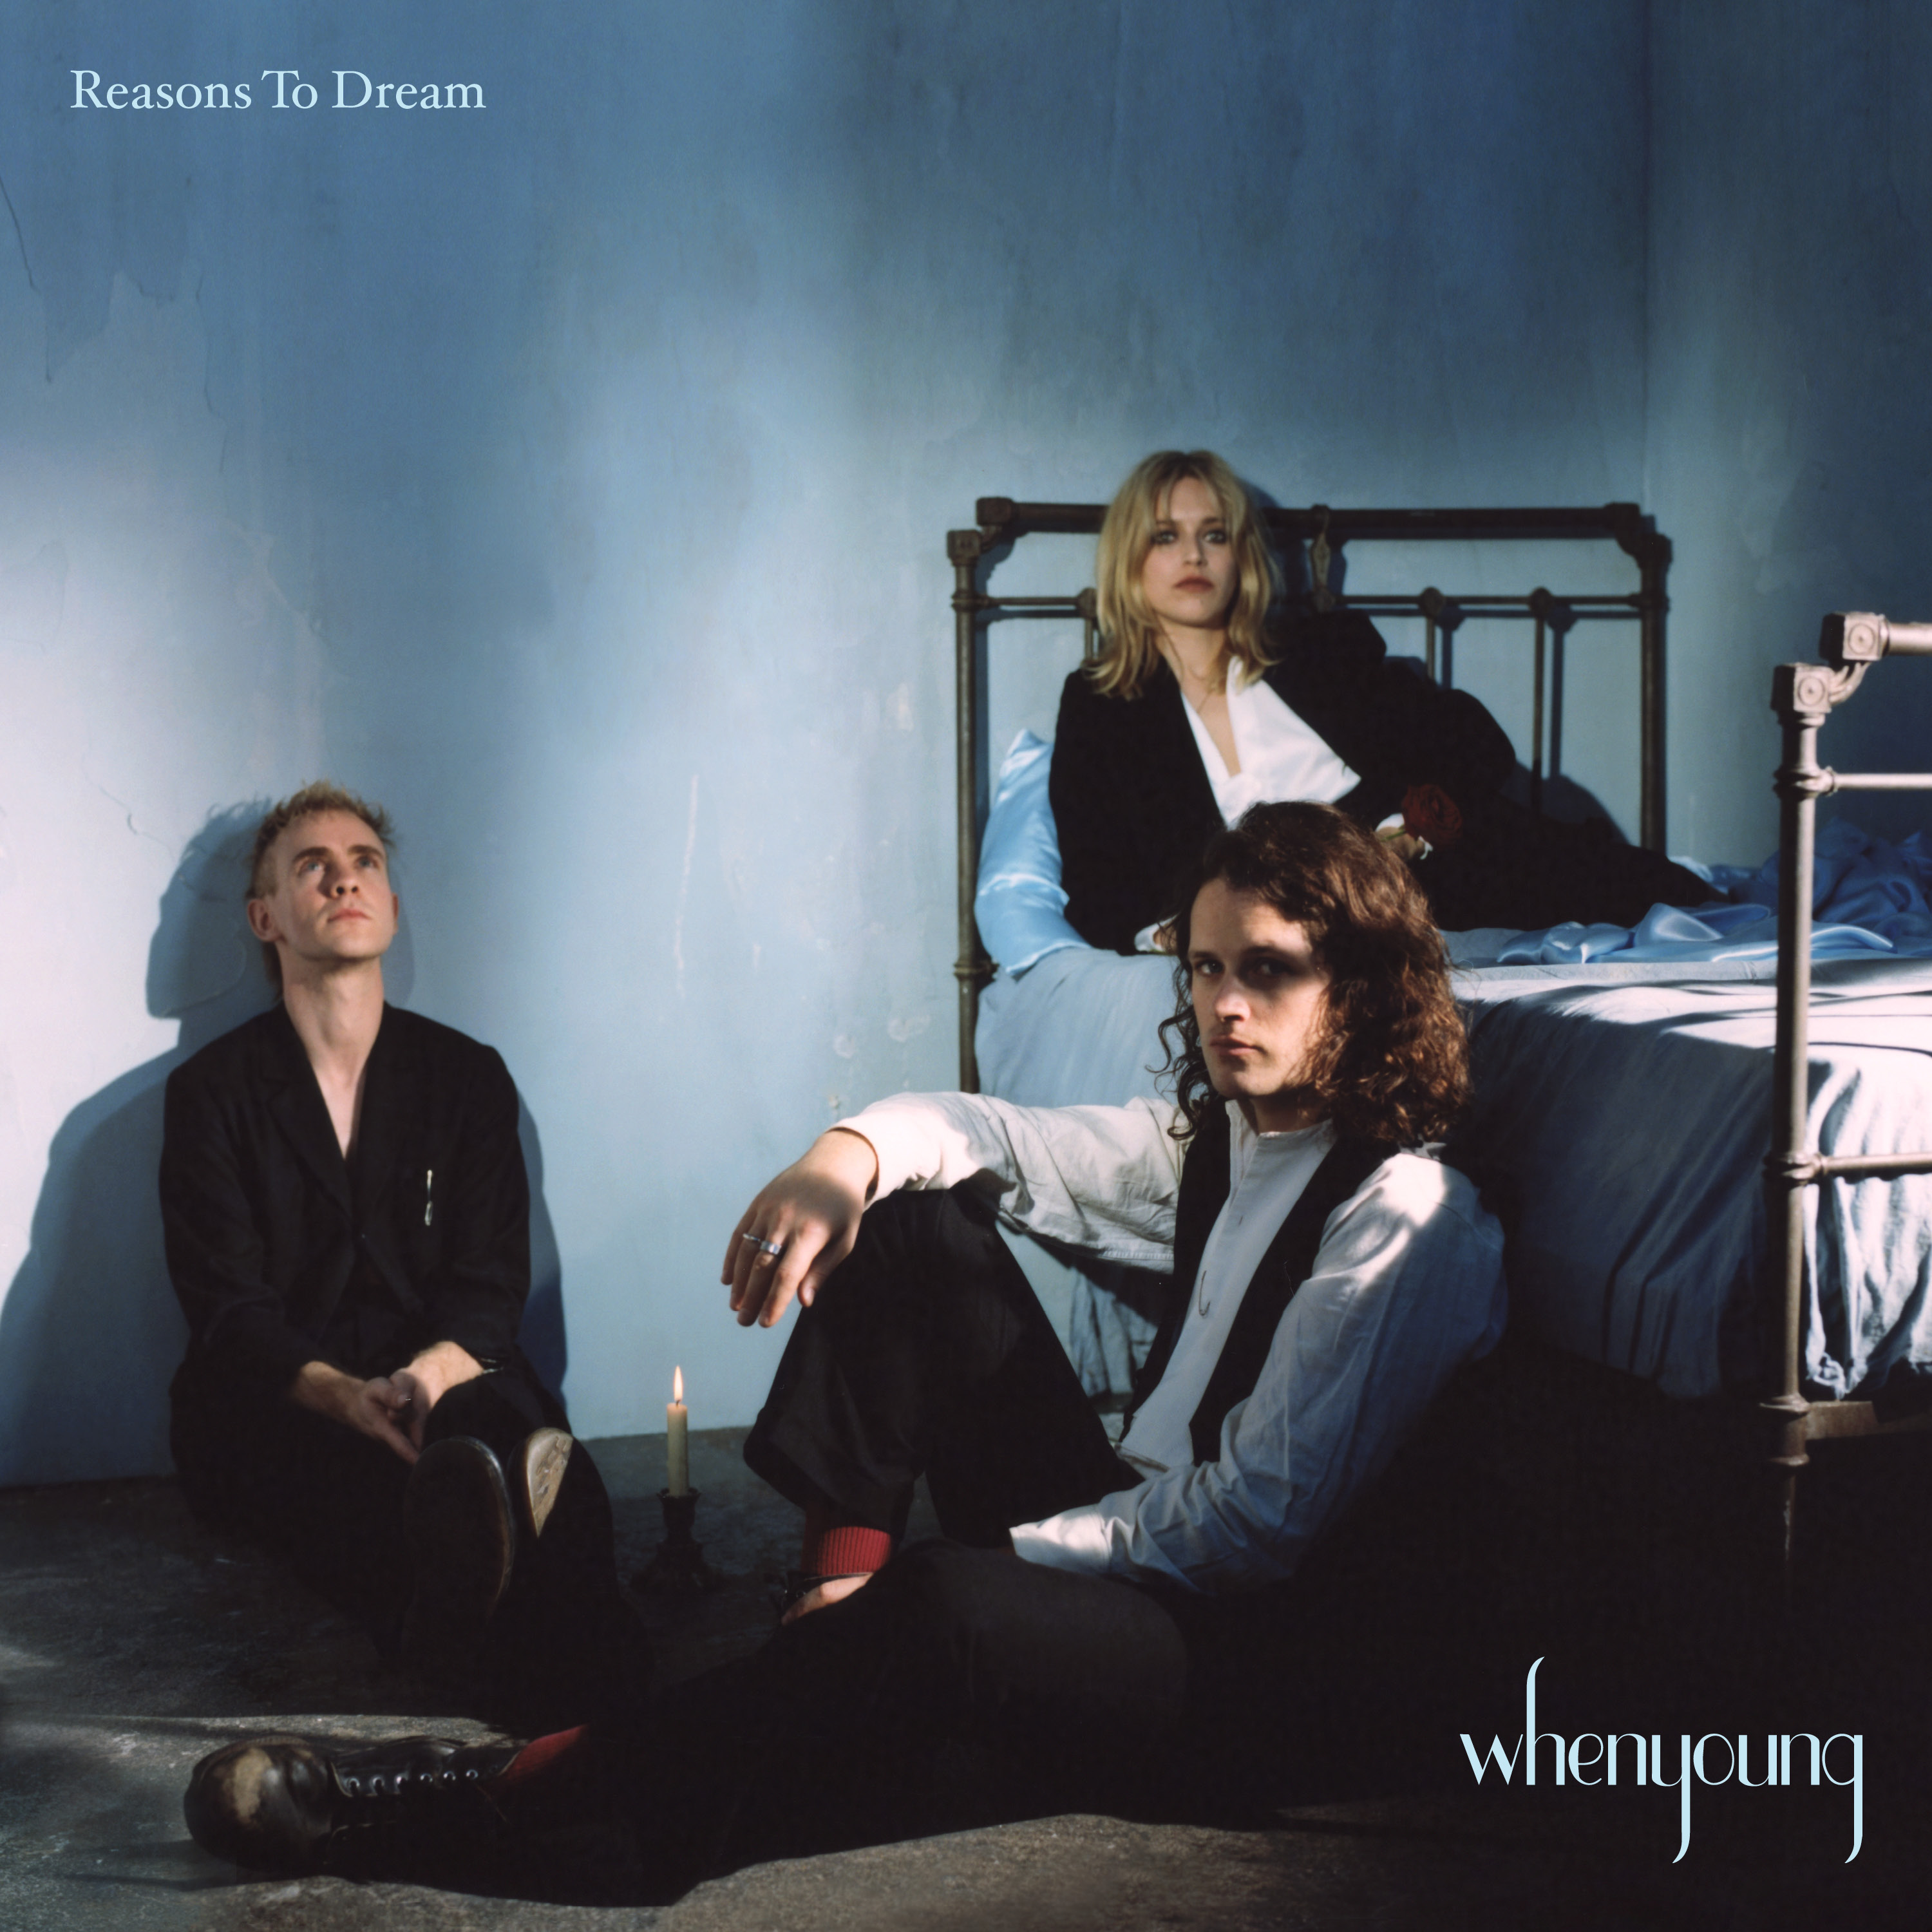 whenyoung – Reasons To Dream